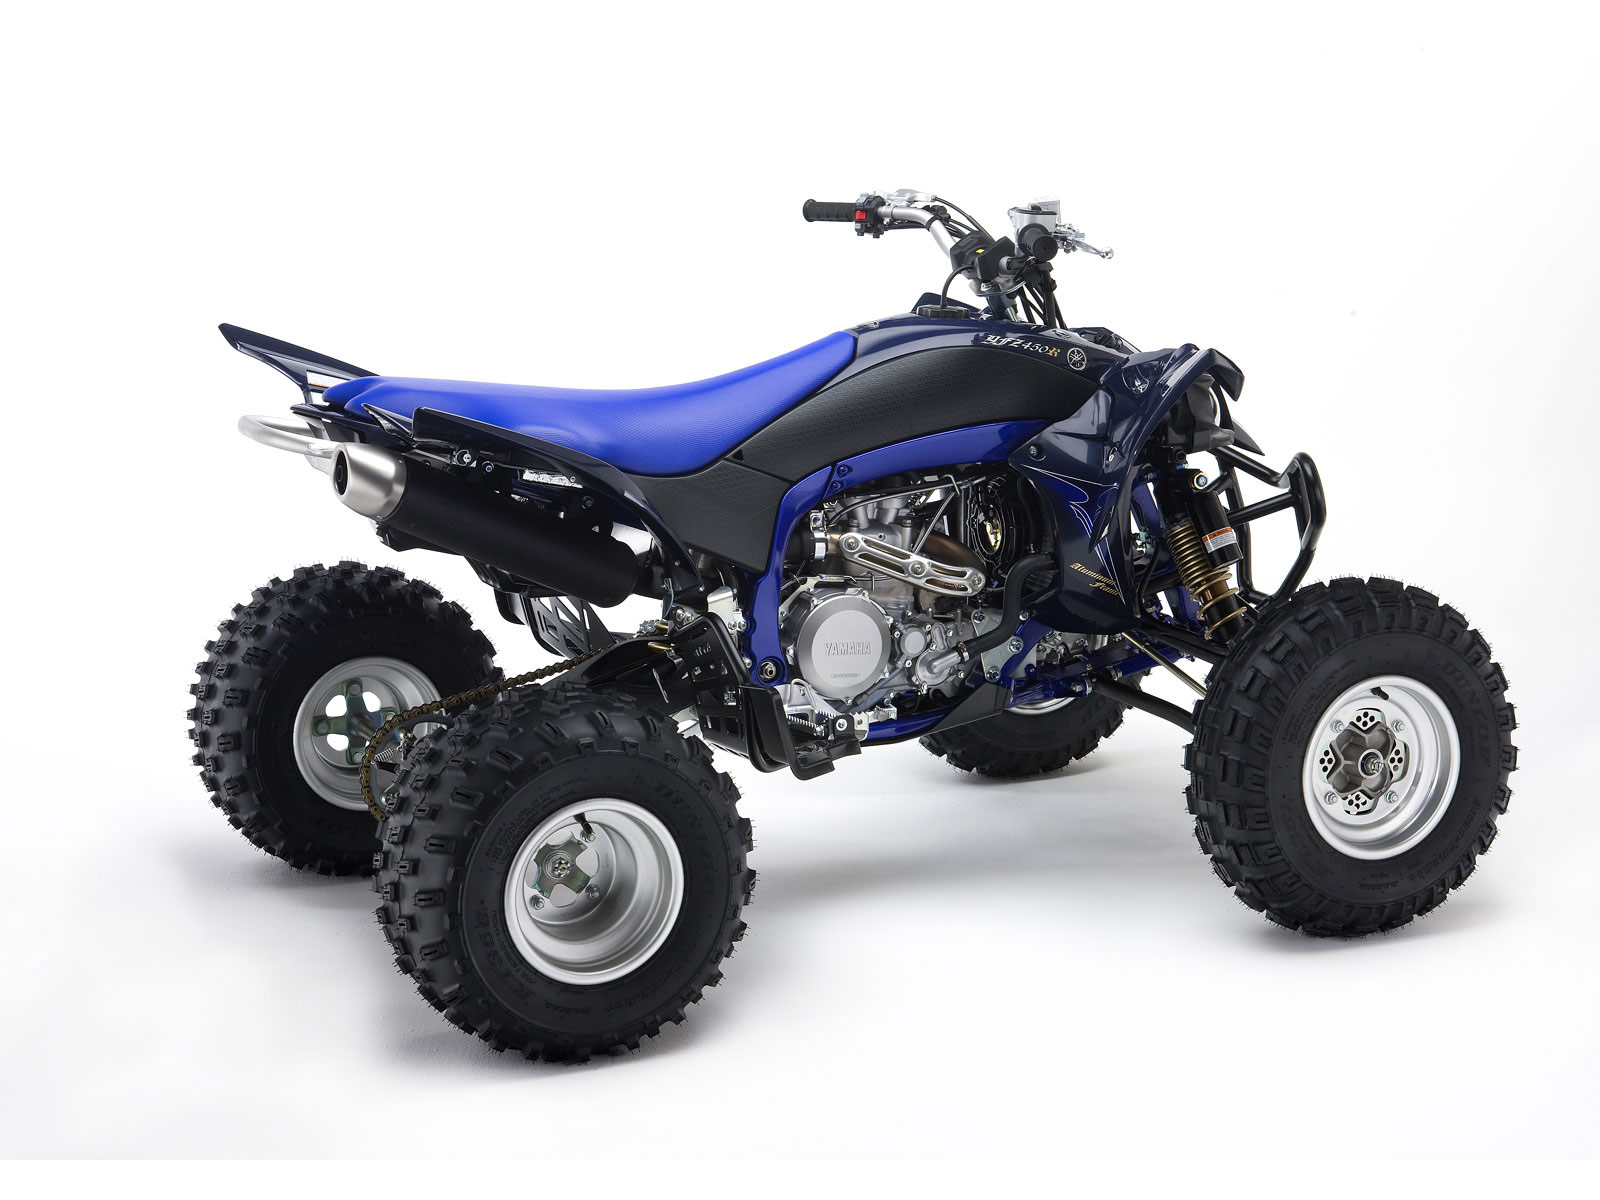 2010 yamaha yfz450r se pictures and specifications for Yamaha atv yfz450